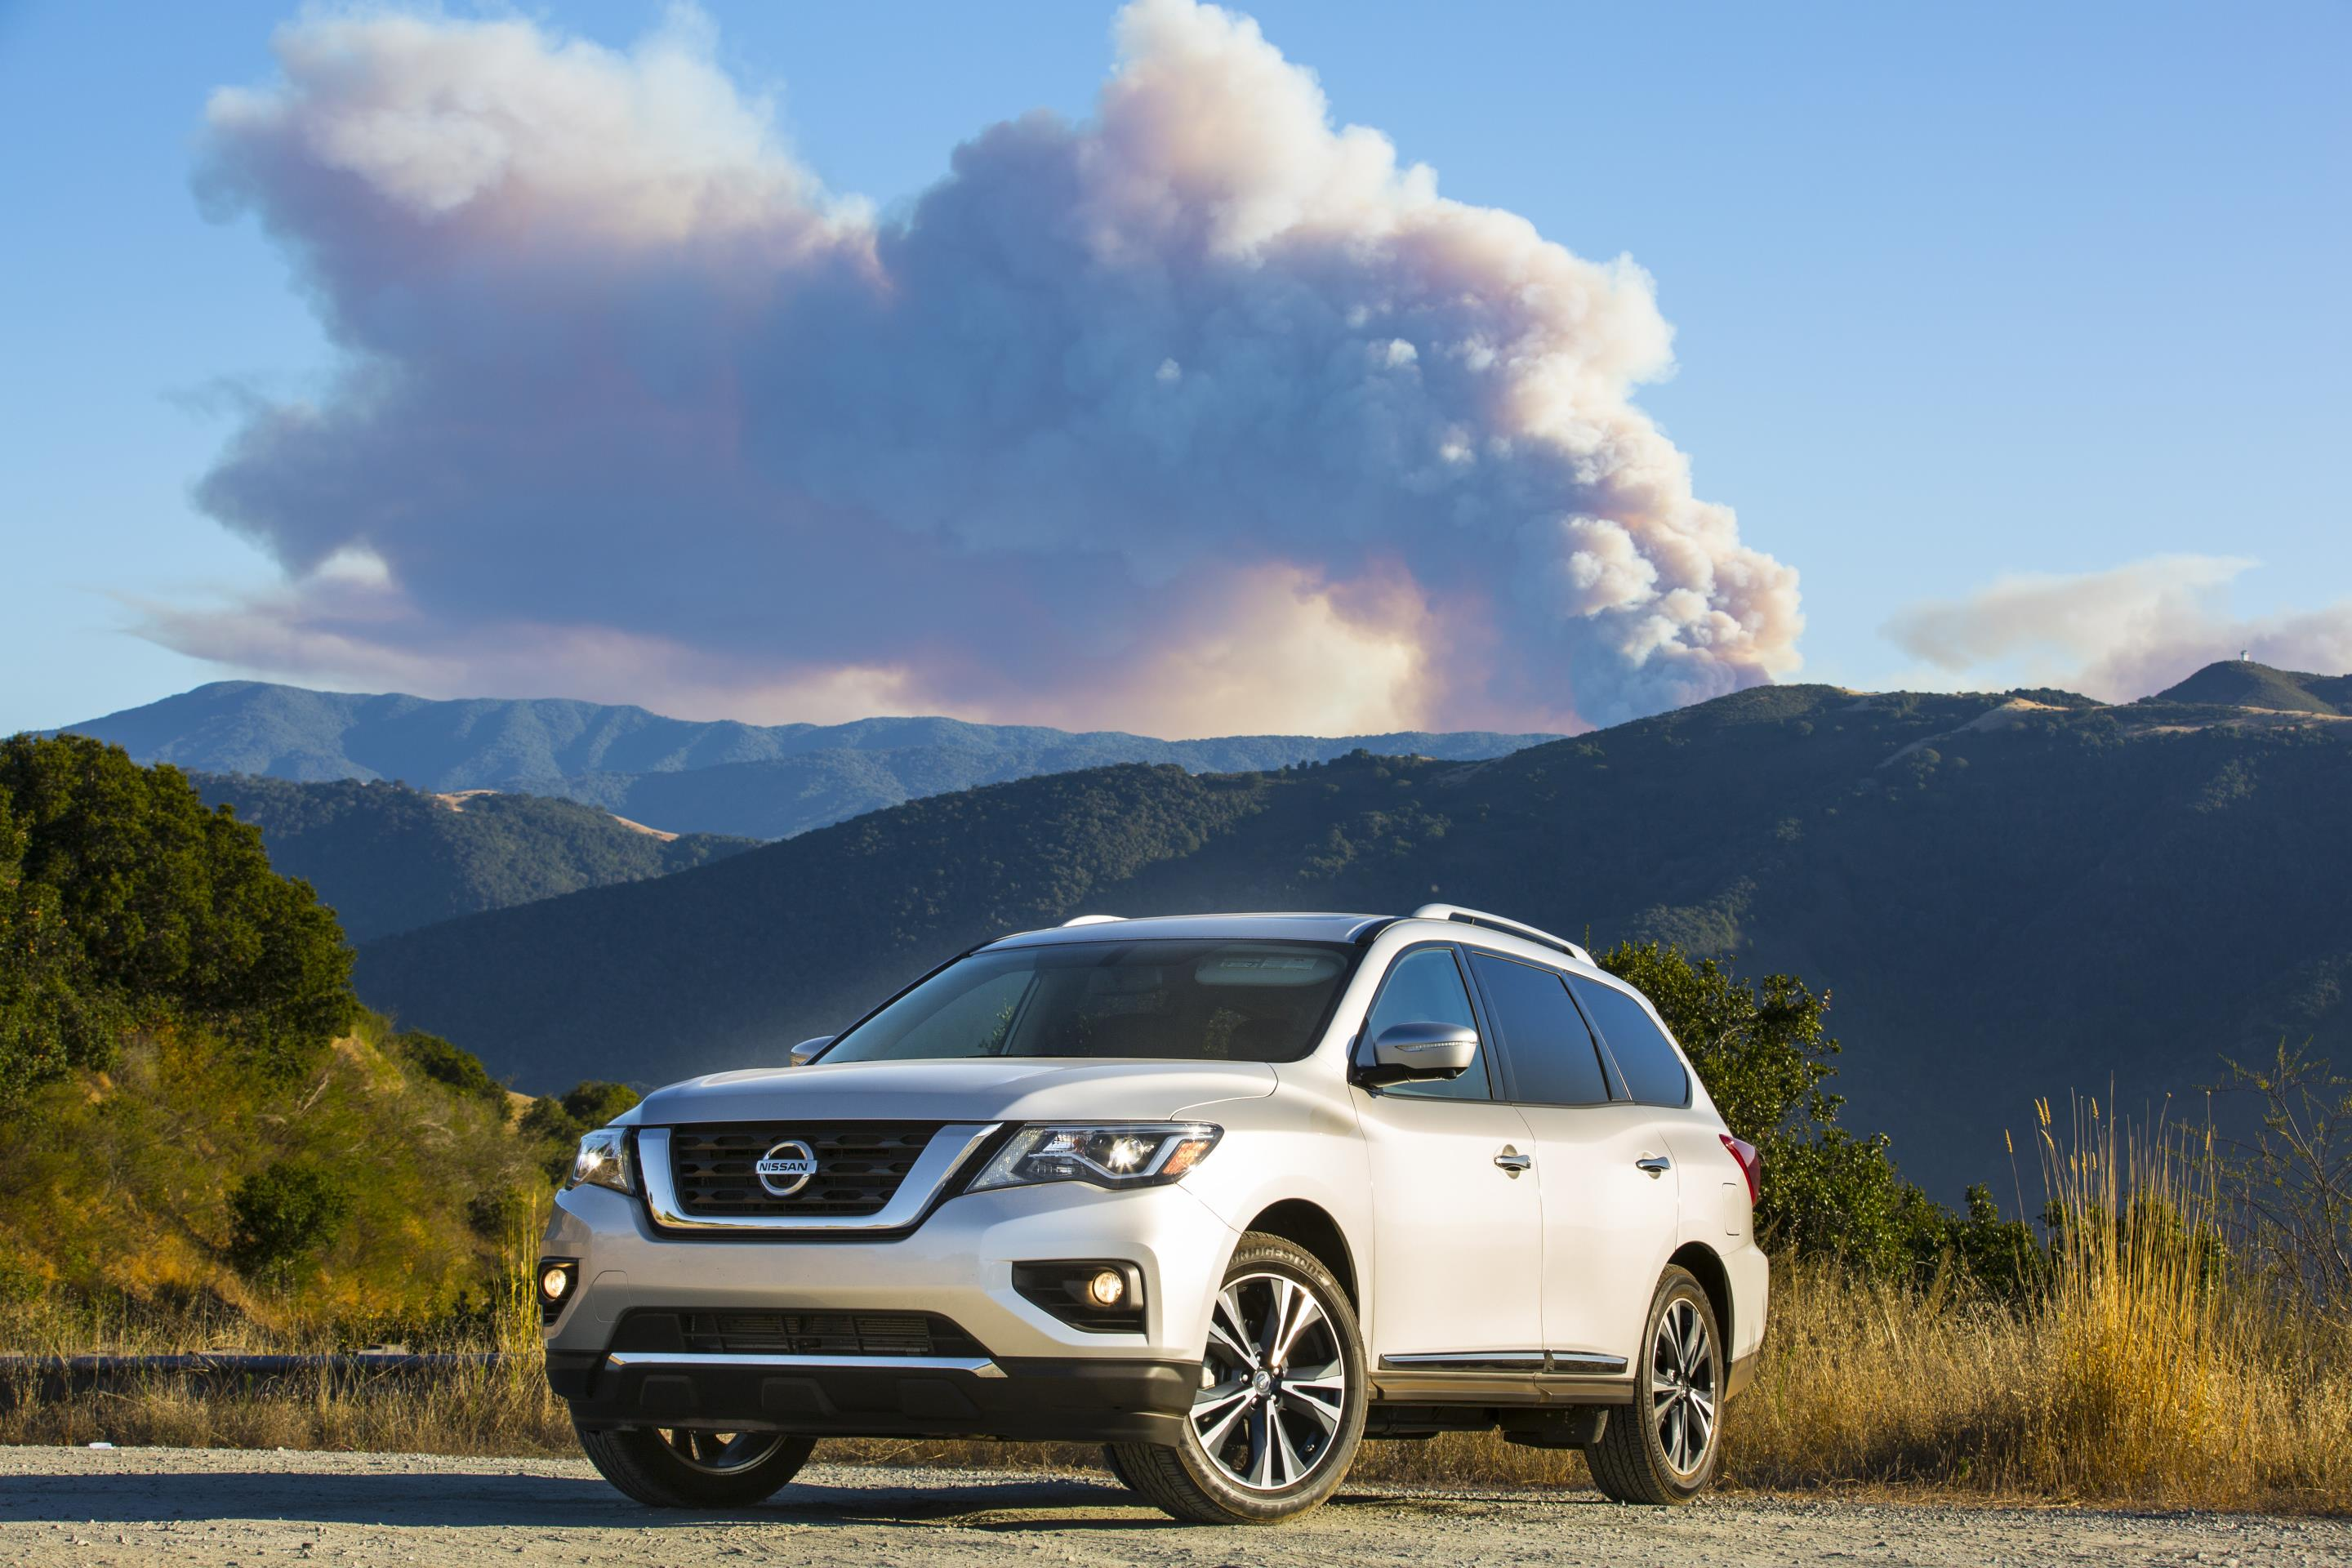 Nissan Pathfinder, one of Nissan's top selling vehicles in calendar year 2017